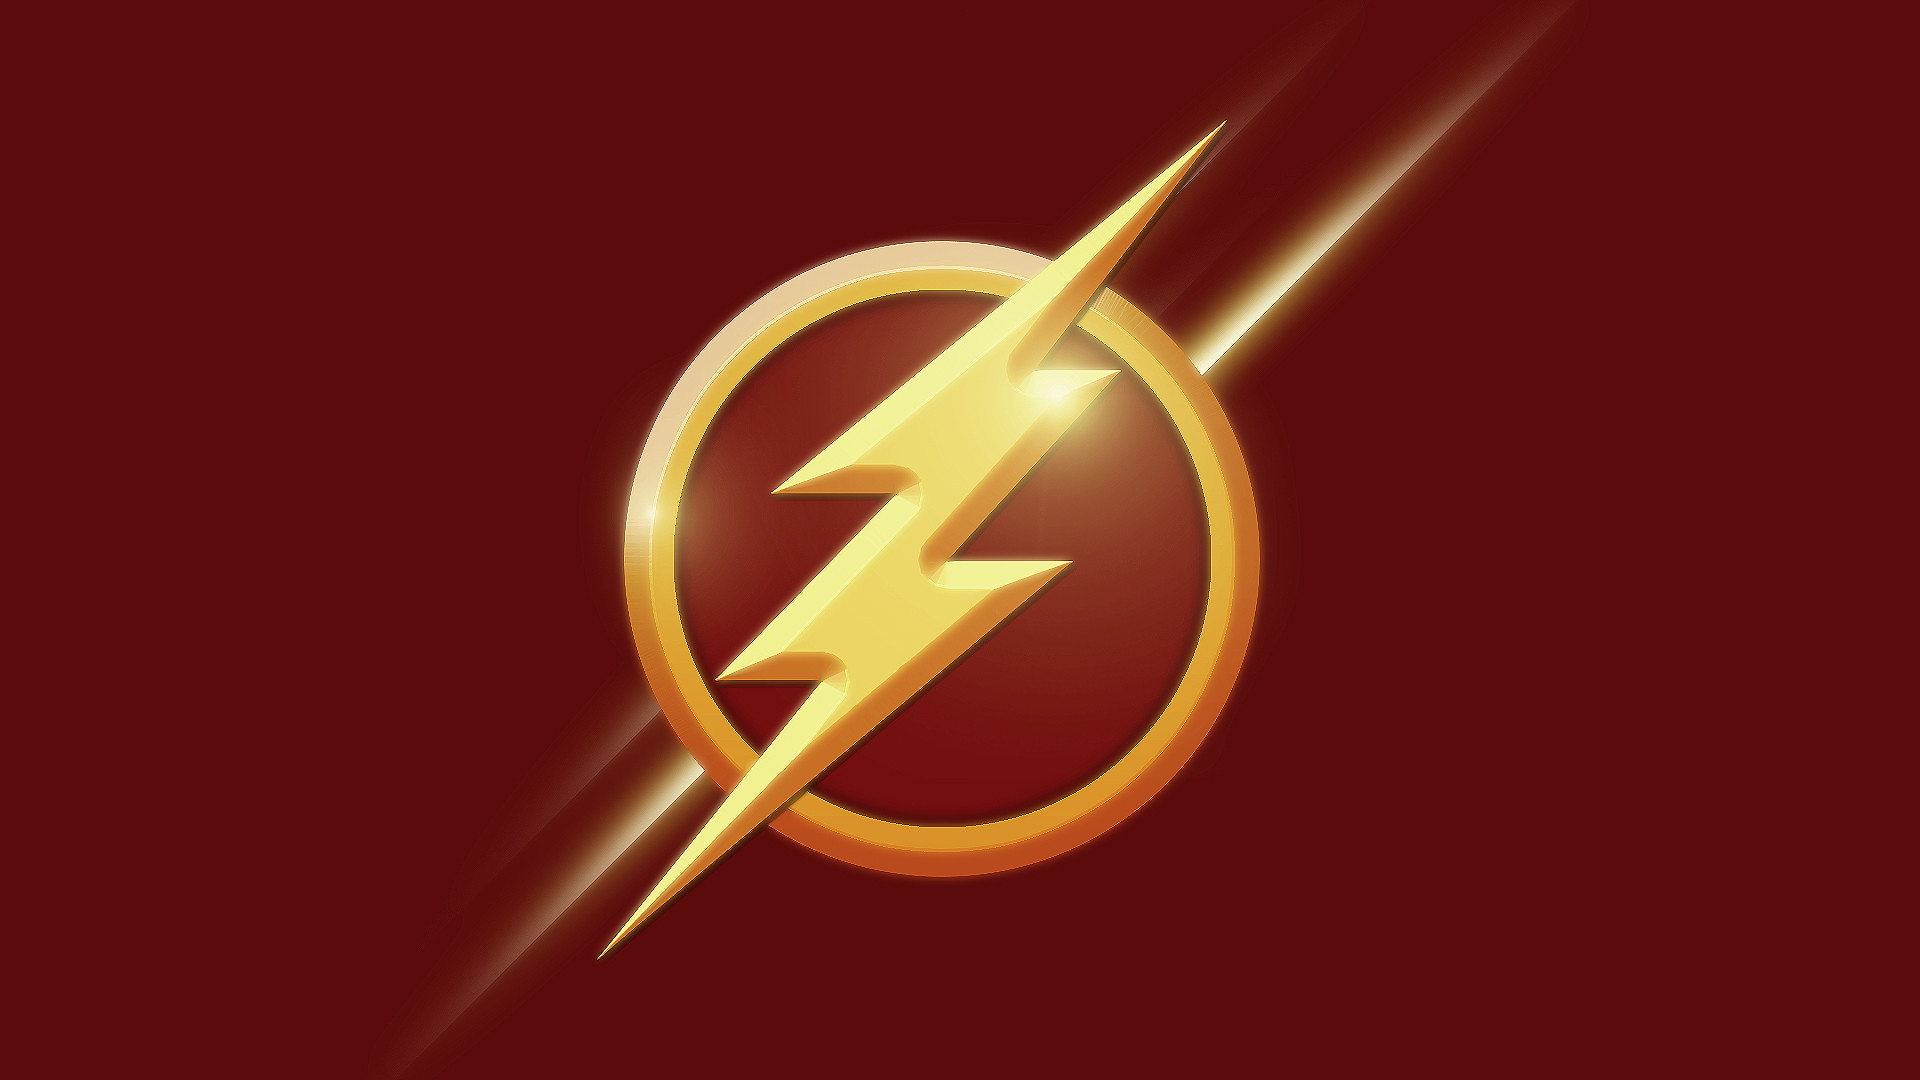 The Flash Logo Wallpaper - WallpaperSafari